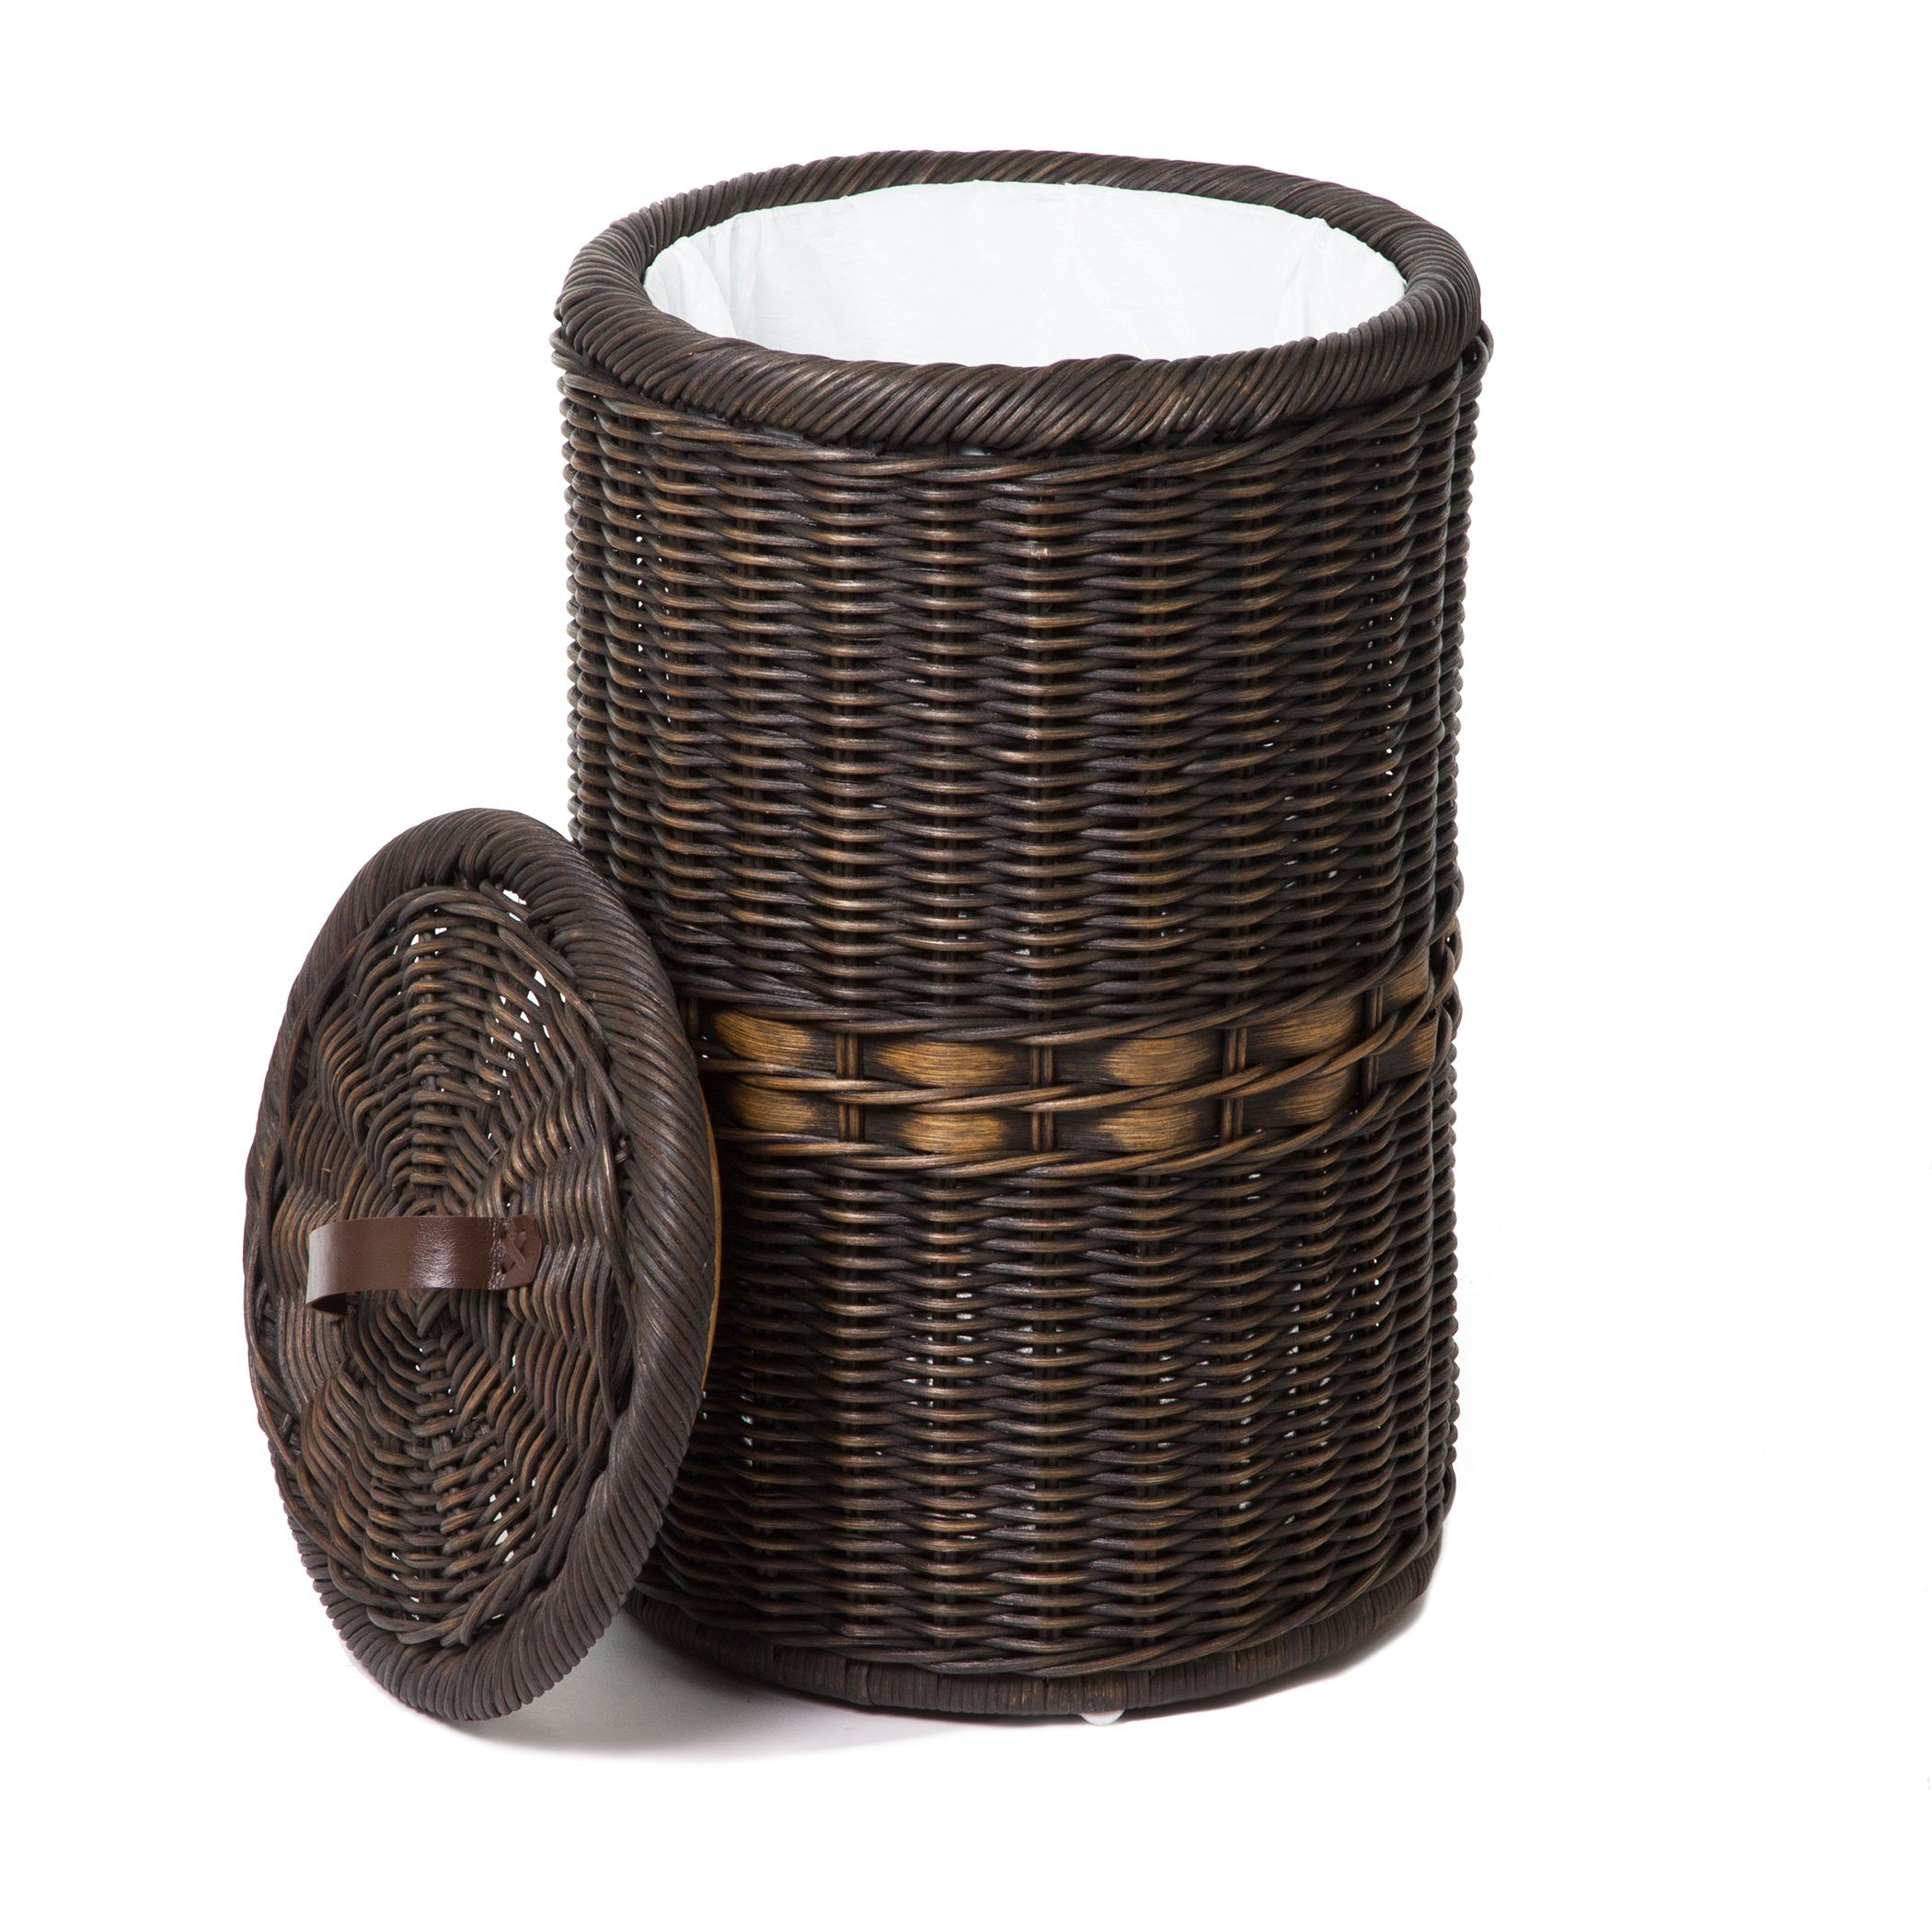 Wicker Wastebasket With Lid Small : Tall wicker waste basket with metal liner the lady